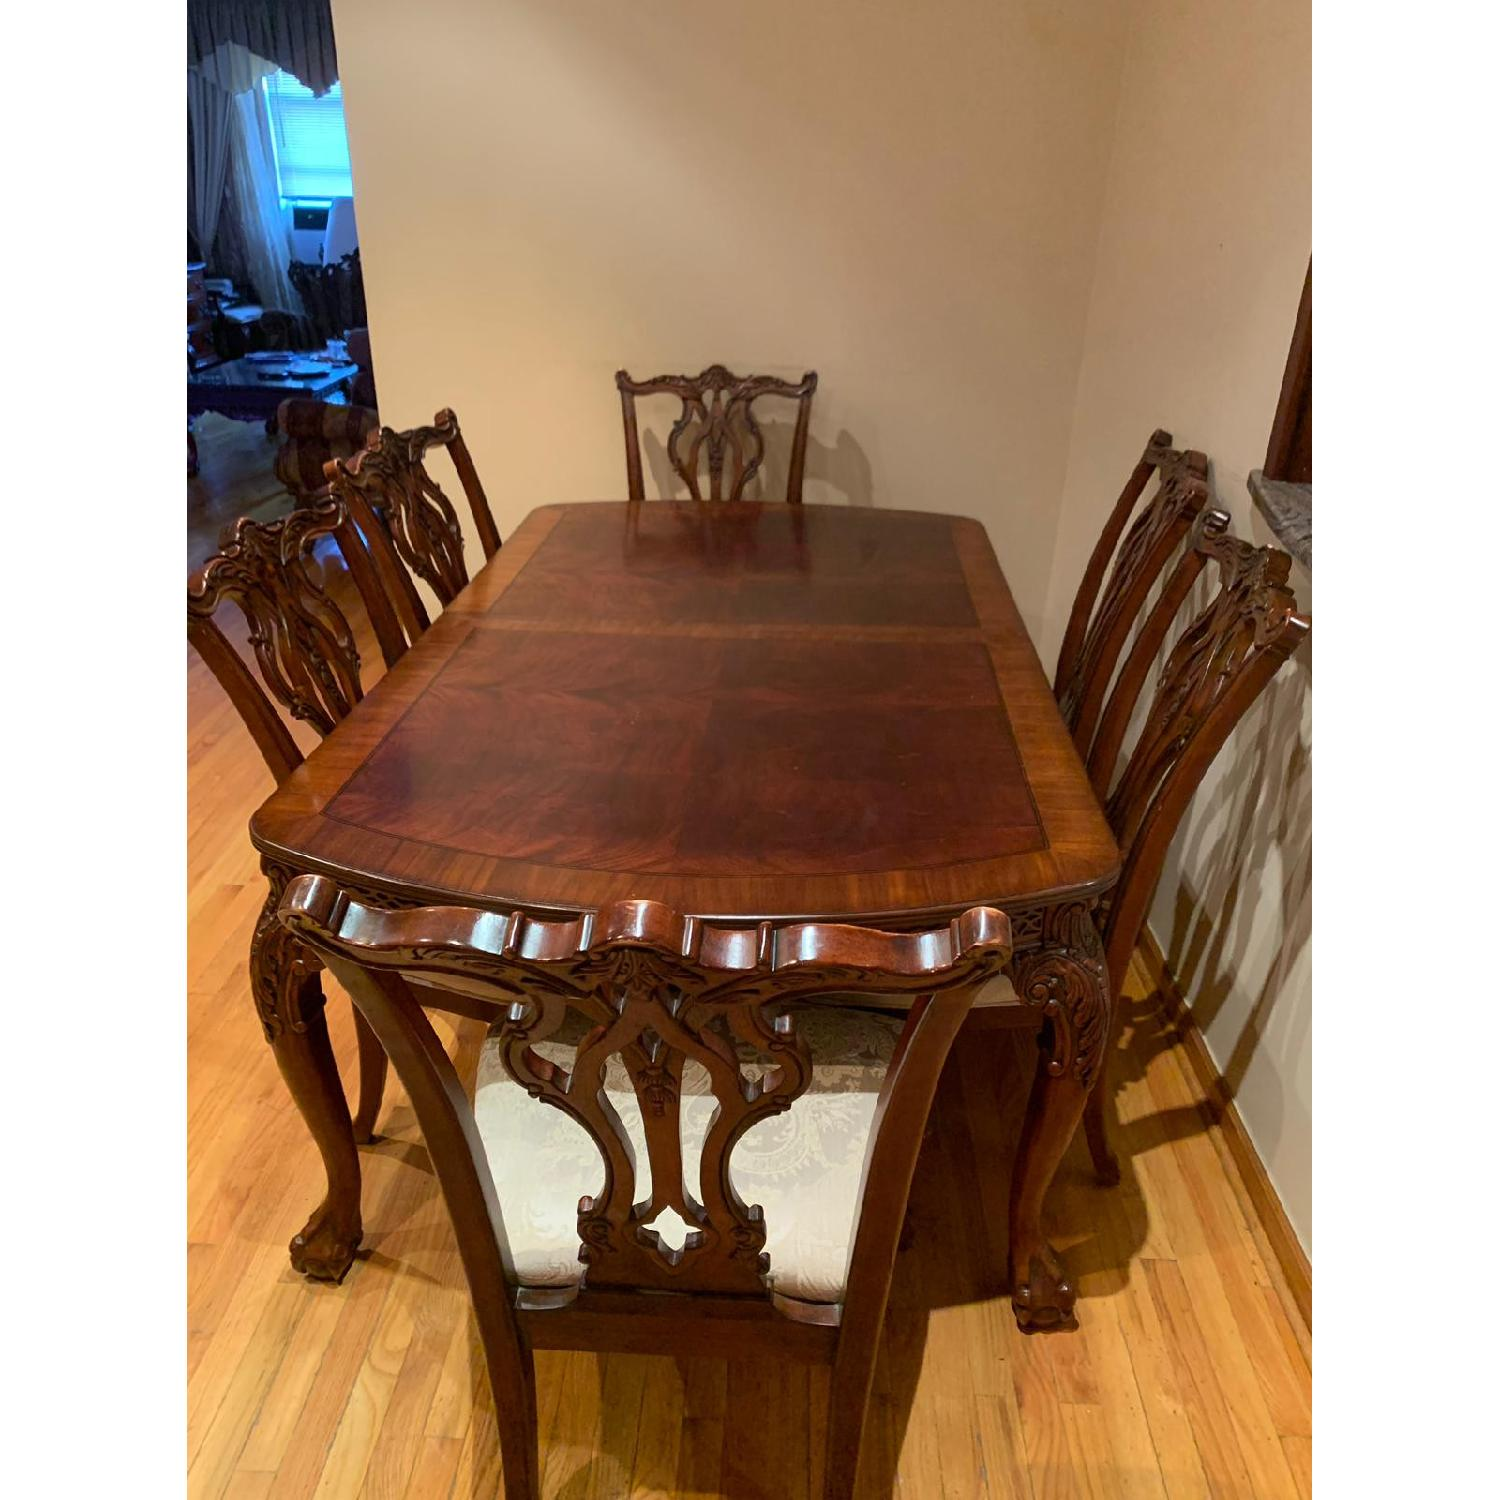 Traditional Wood Dining Table w/ 8 Chairs - image-2